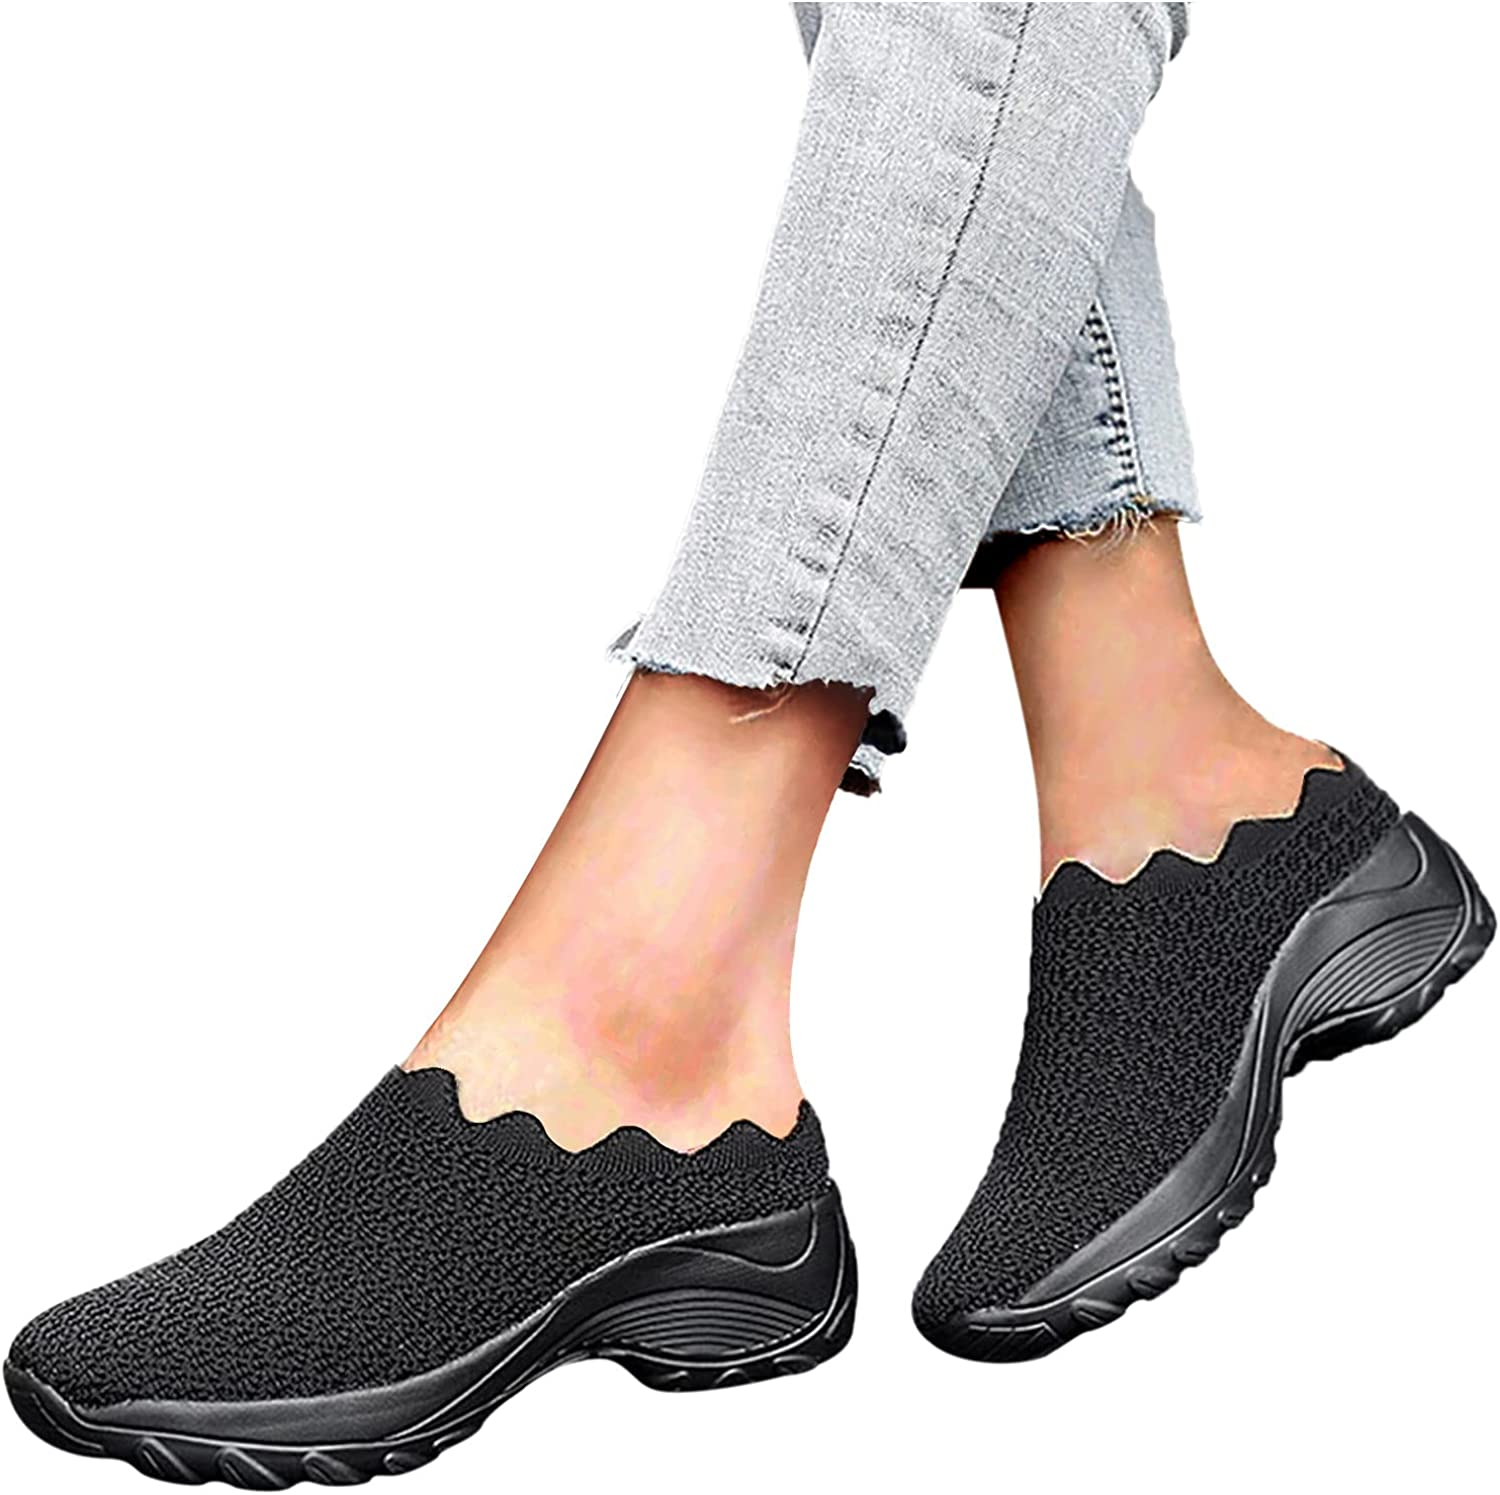 Womens Max 47% OFF Casual Reservation Slip On Sneakers Summer Wedge Sp Toe Women's Round